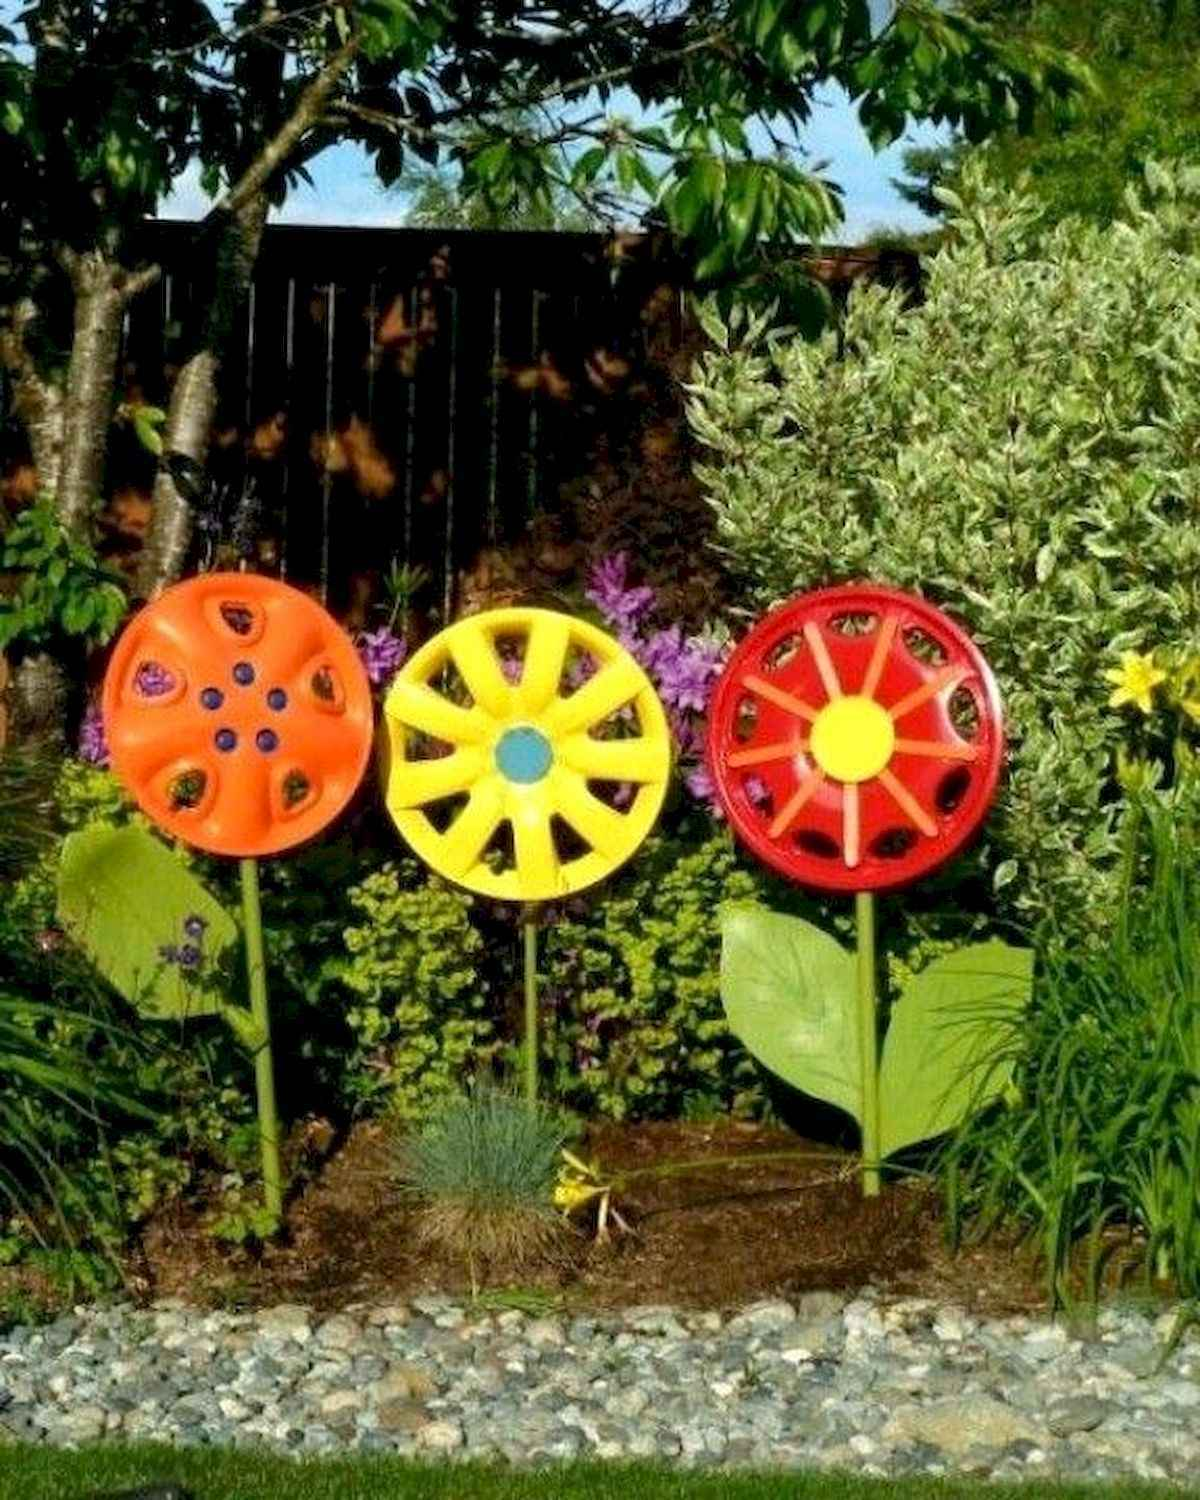 40 diy fun garden ideas decorations and makeover for summer (19 ...